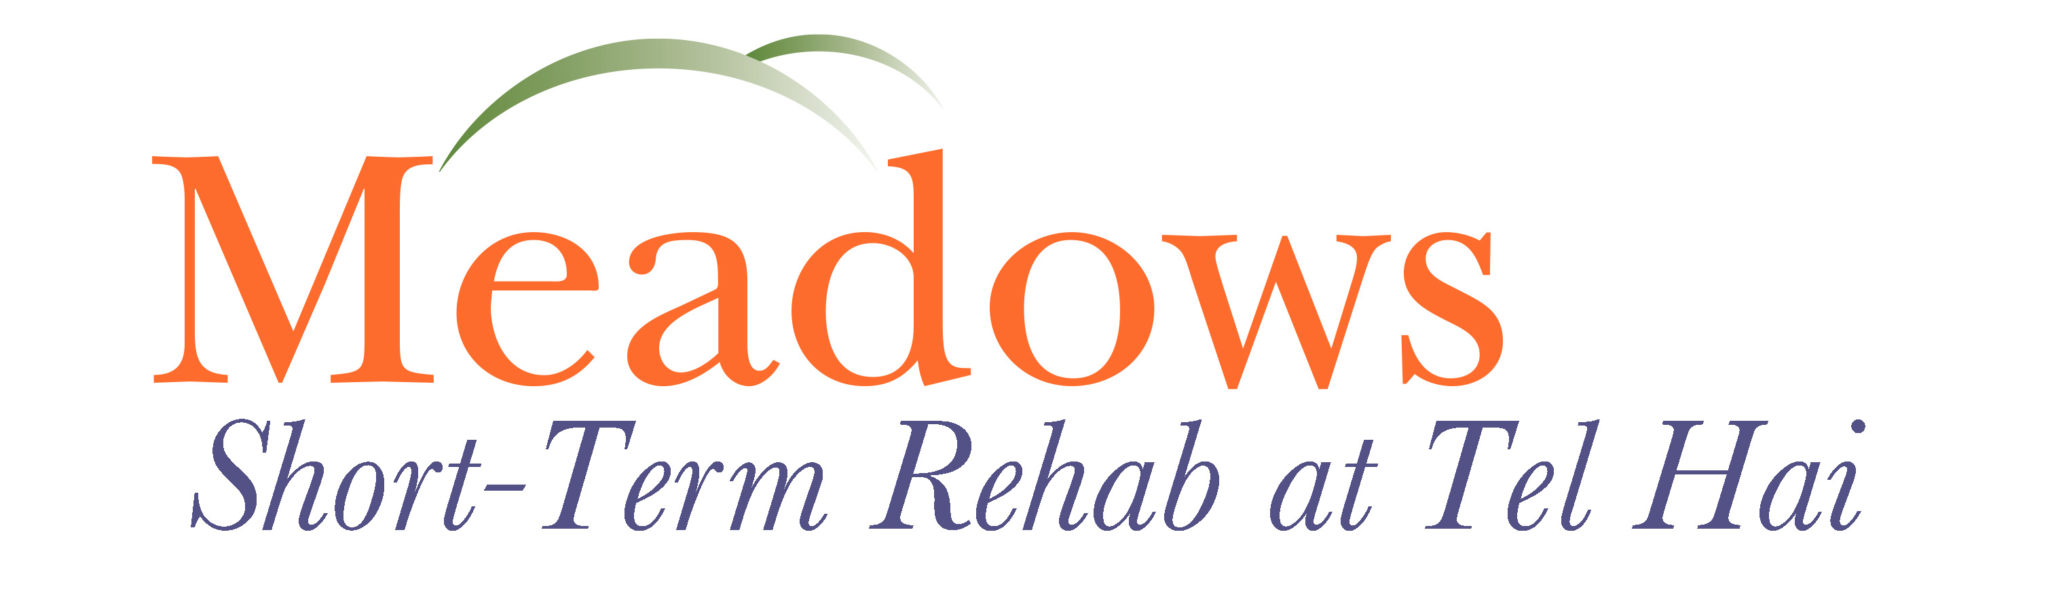 Meadows Short Term Rehab Services